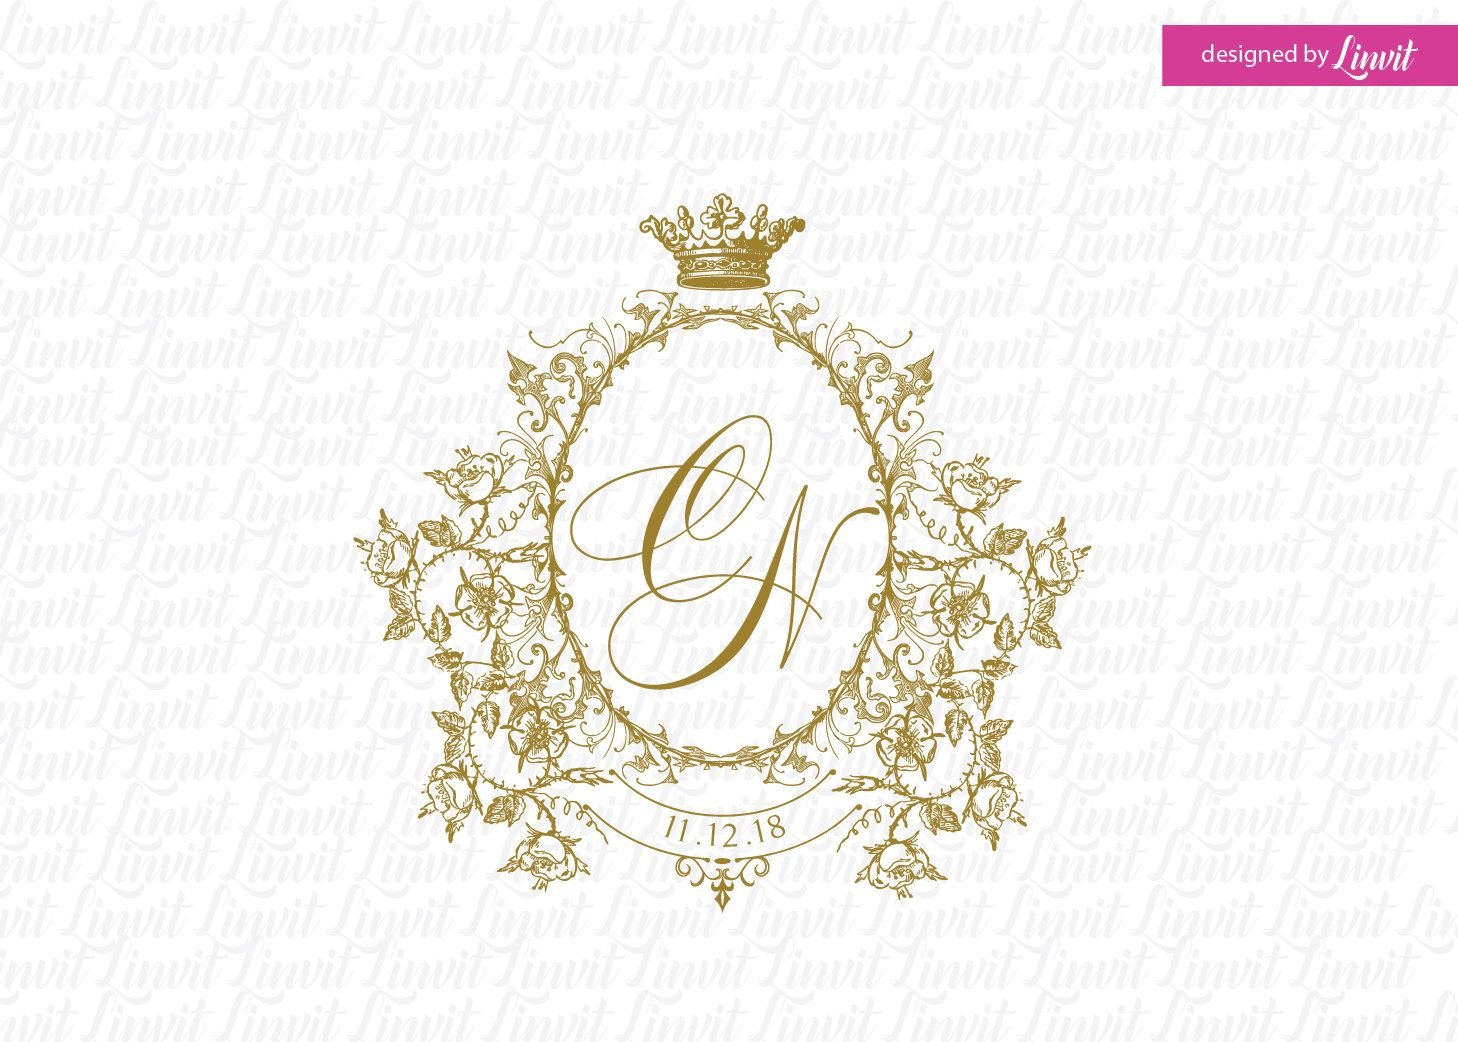 Royal Wedding Monogram Wedding Logo Wedding Crest Custom Wedding Logo Logo Matrimonio Regal Wedding Custom Wedding Monogram Monogram Wedding Wedding Logos